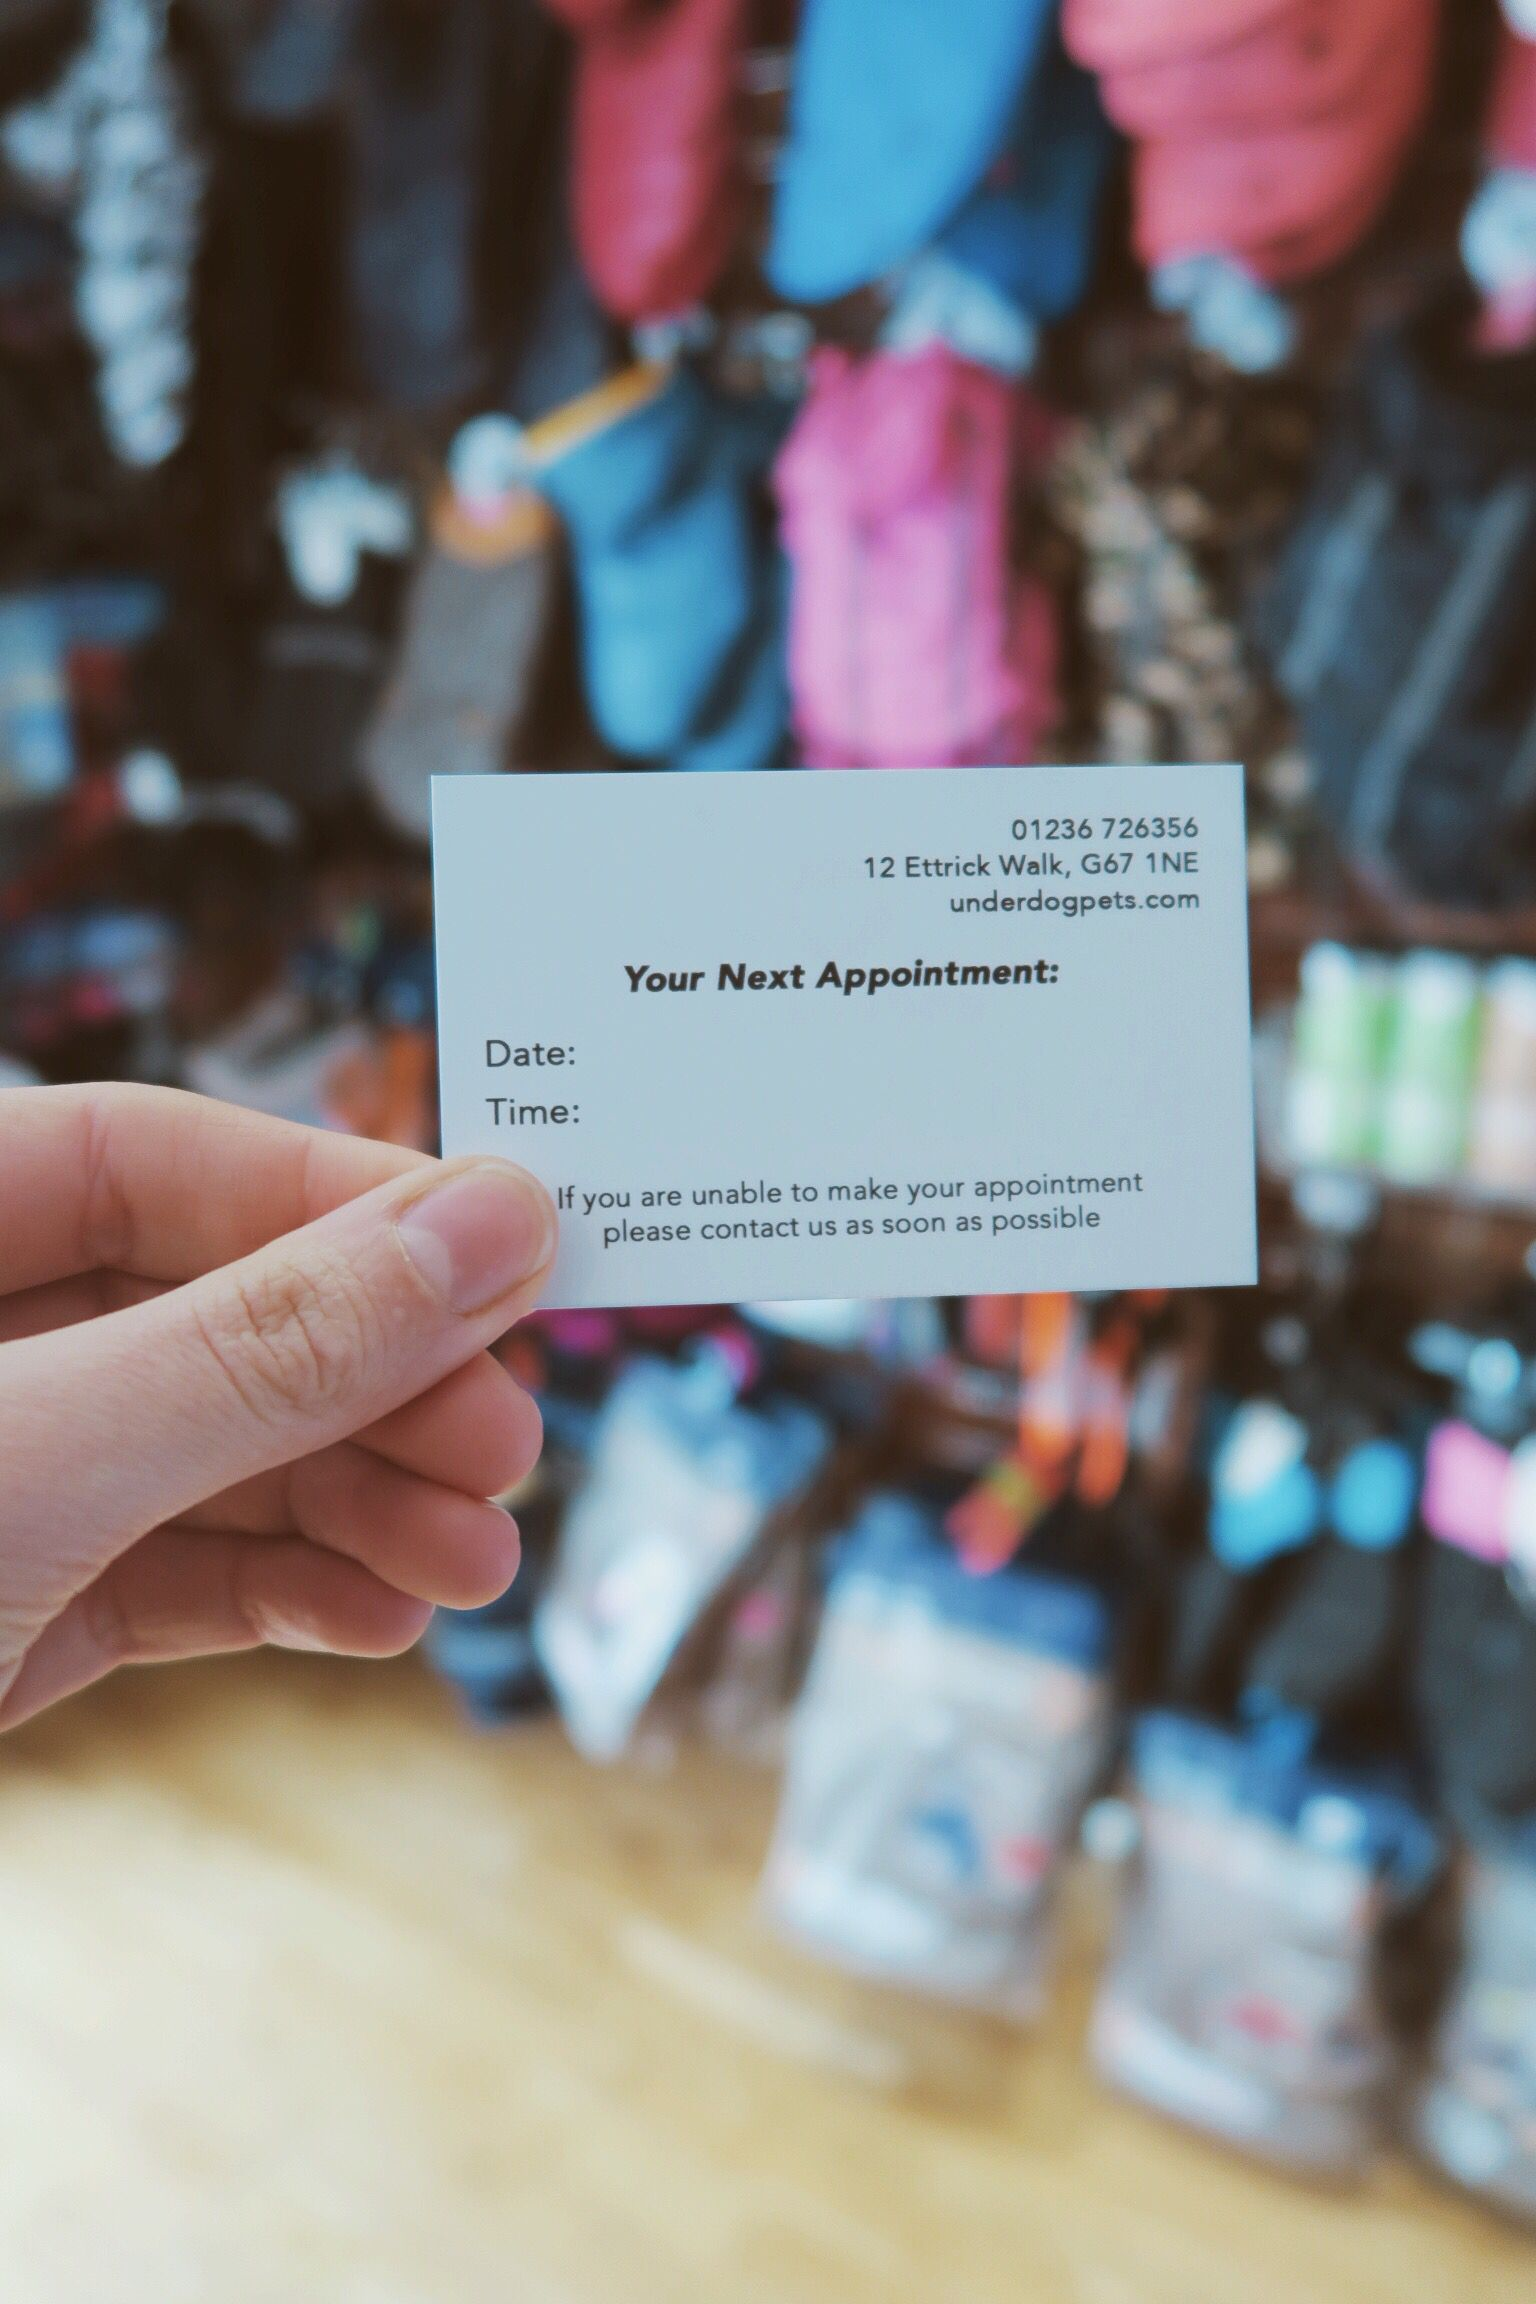 Dog Grooming Appointment Card Underdog Pets Dog Grooming Grooming Appointment Cards